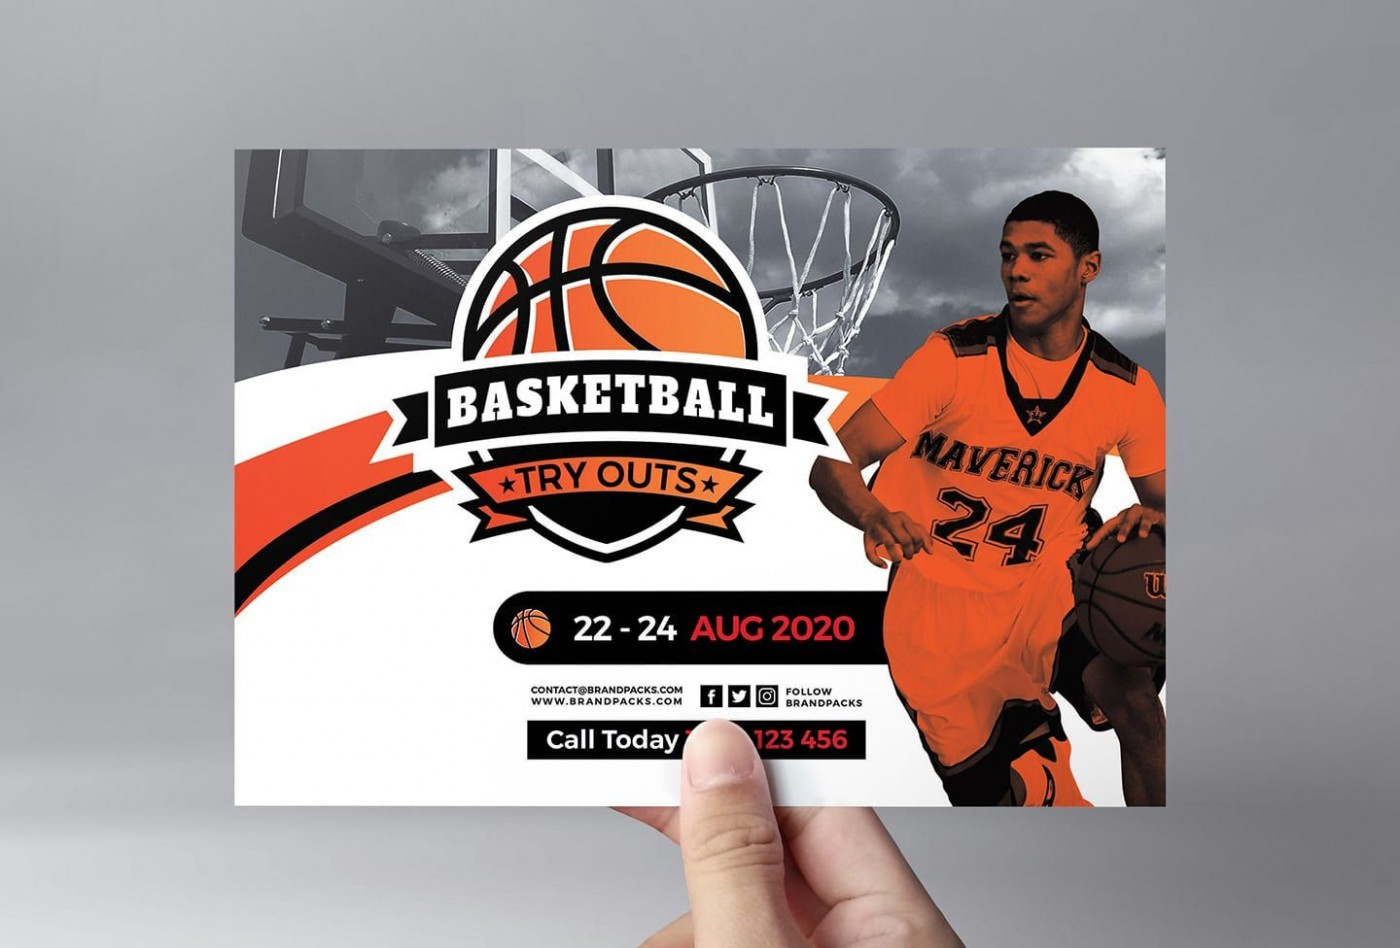 005 Formidable Free Basketball Flyer Template Idea  Game 3 On Tournament Word1400